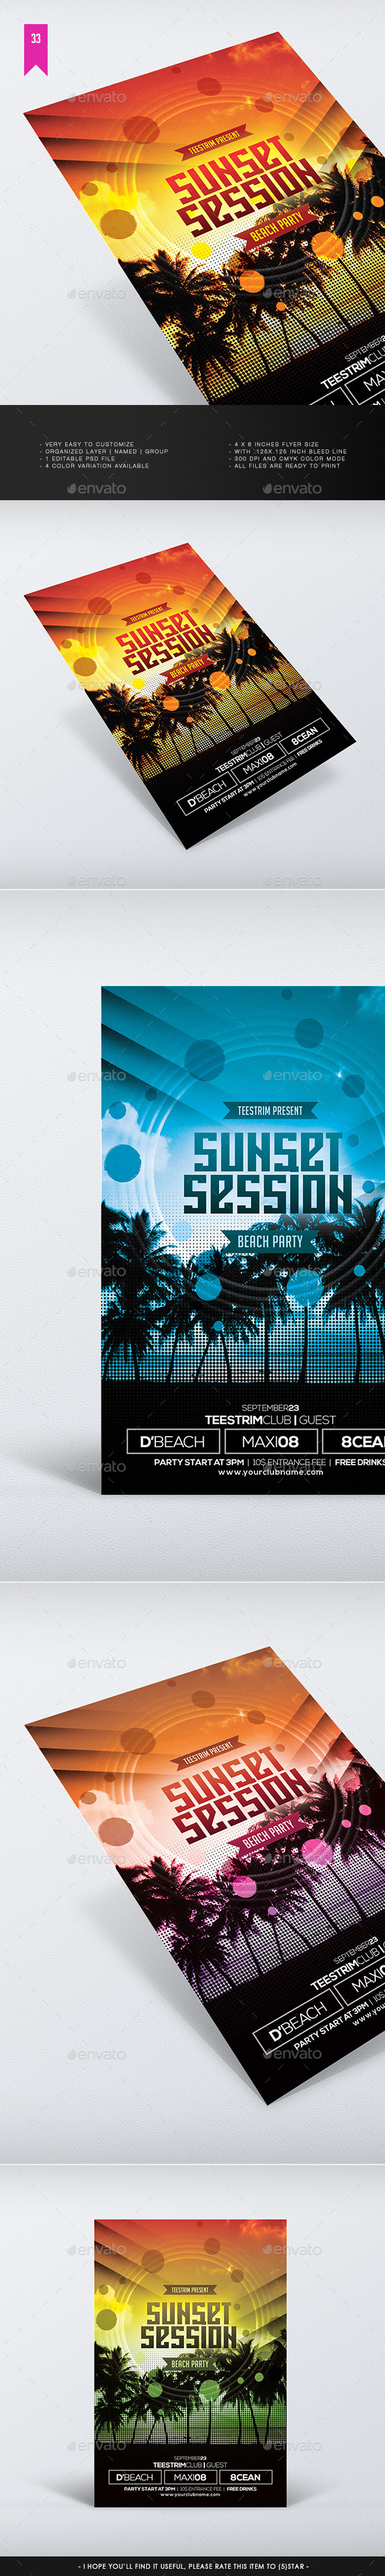 Sunset Session Flyer Template